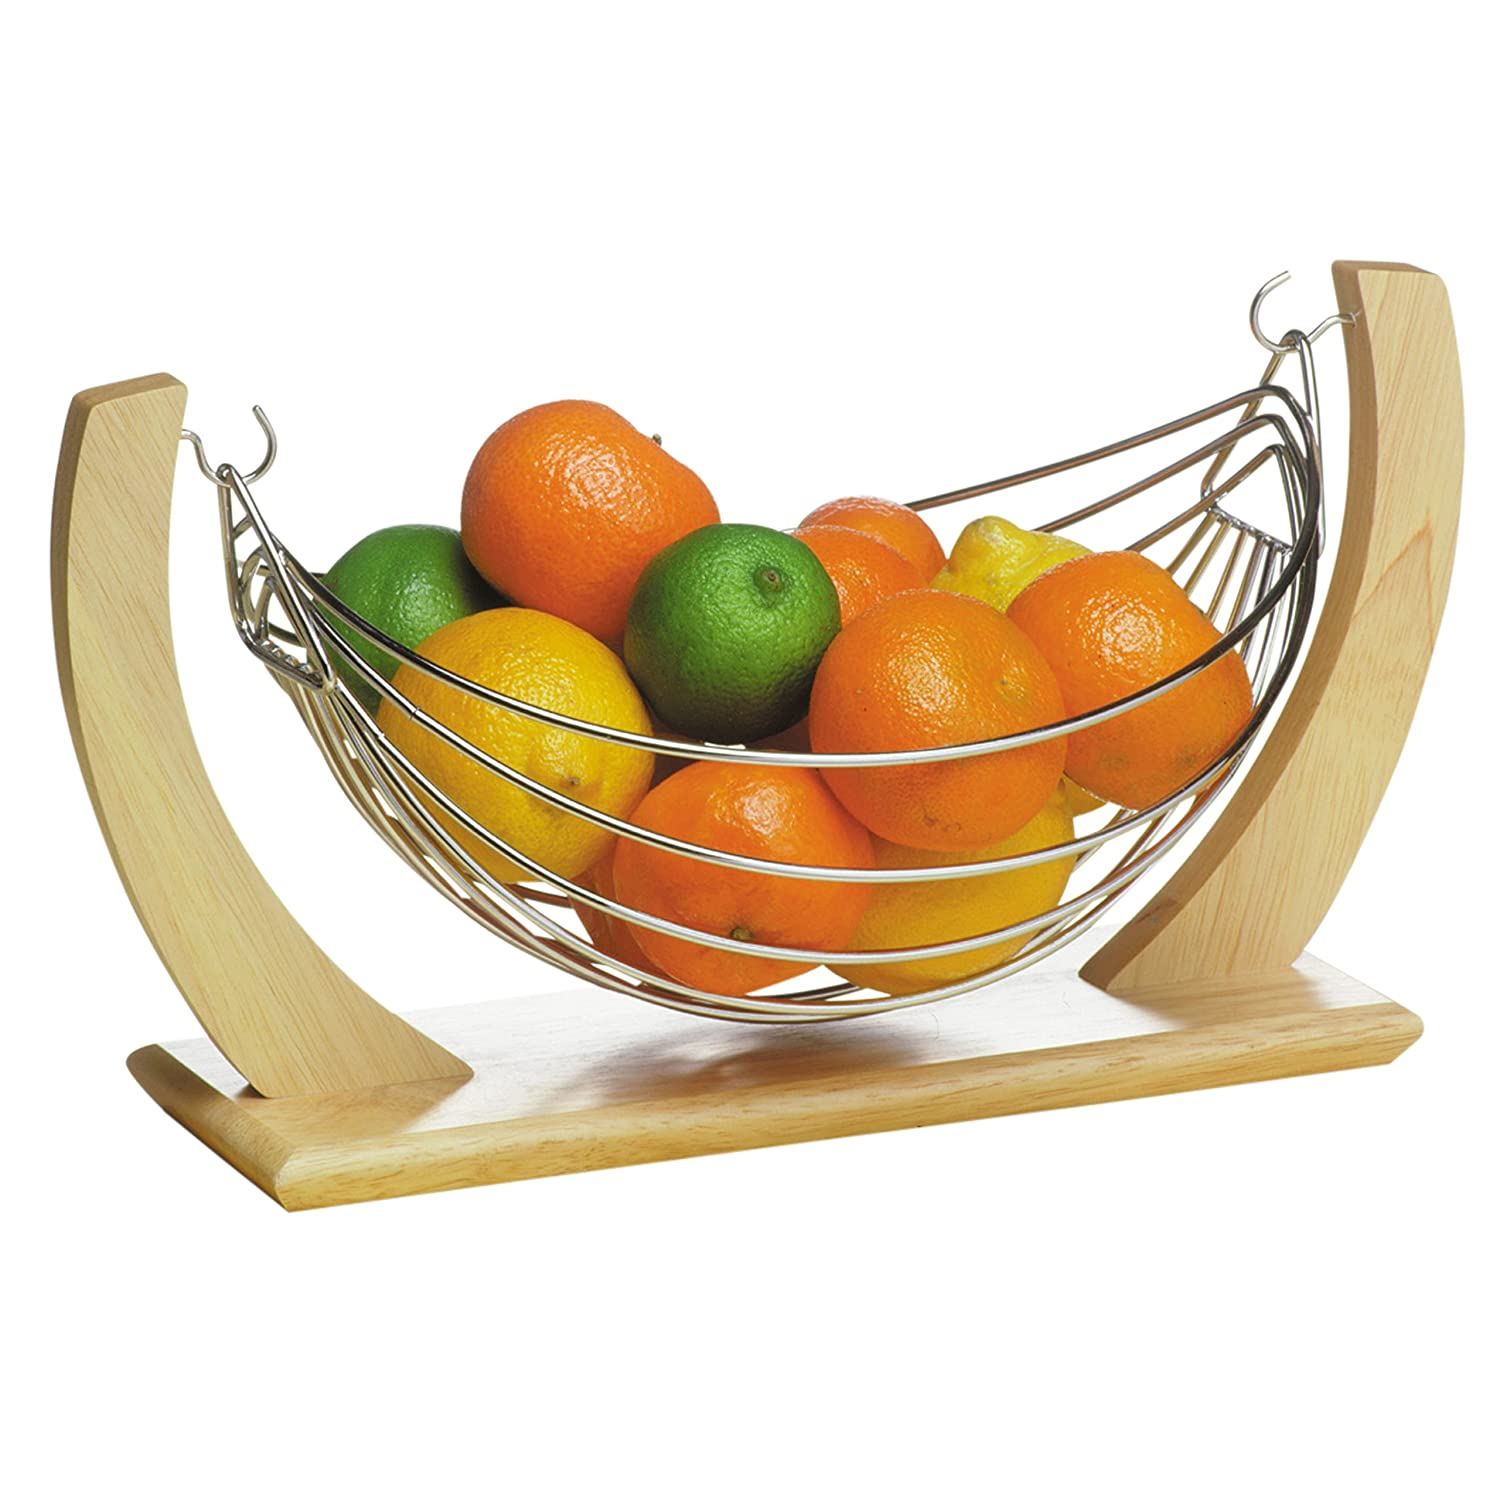 Fruit Basket Storage Vegetable Chrome Wooden Fruit